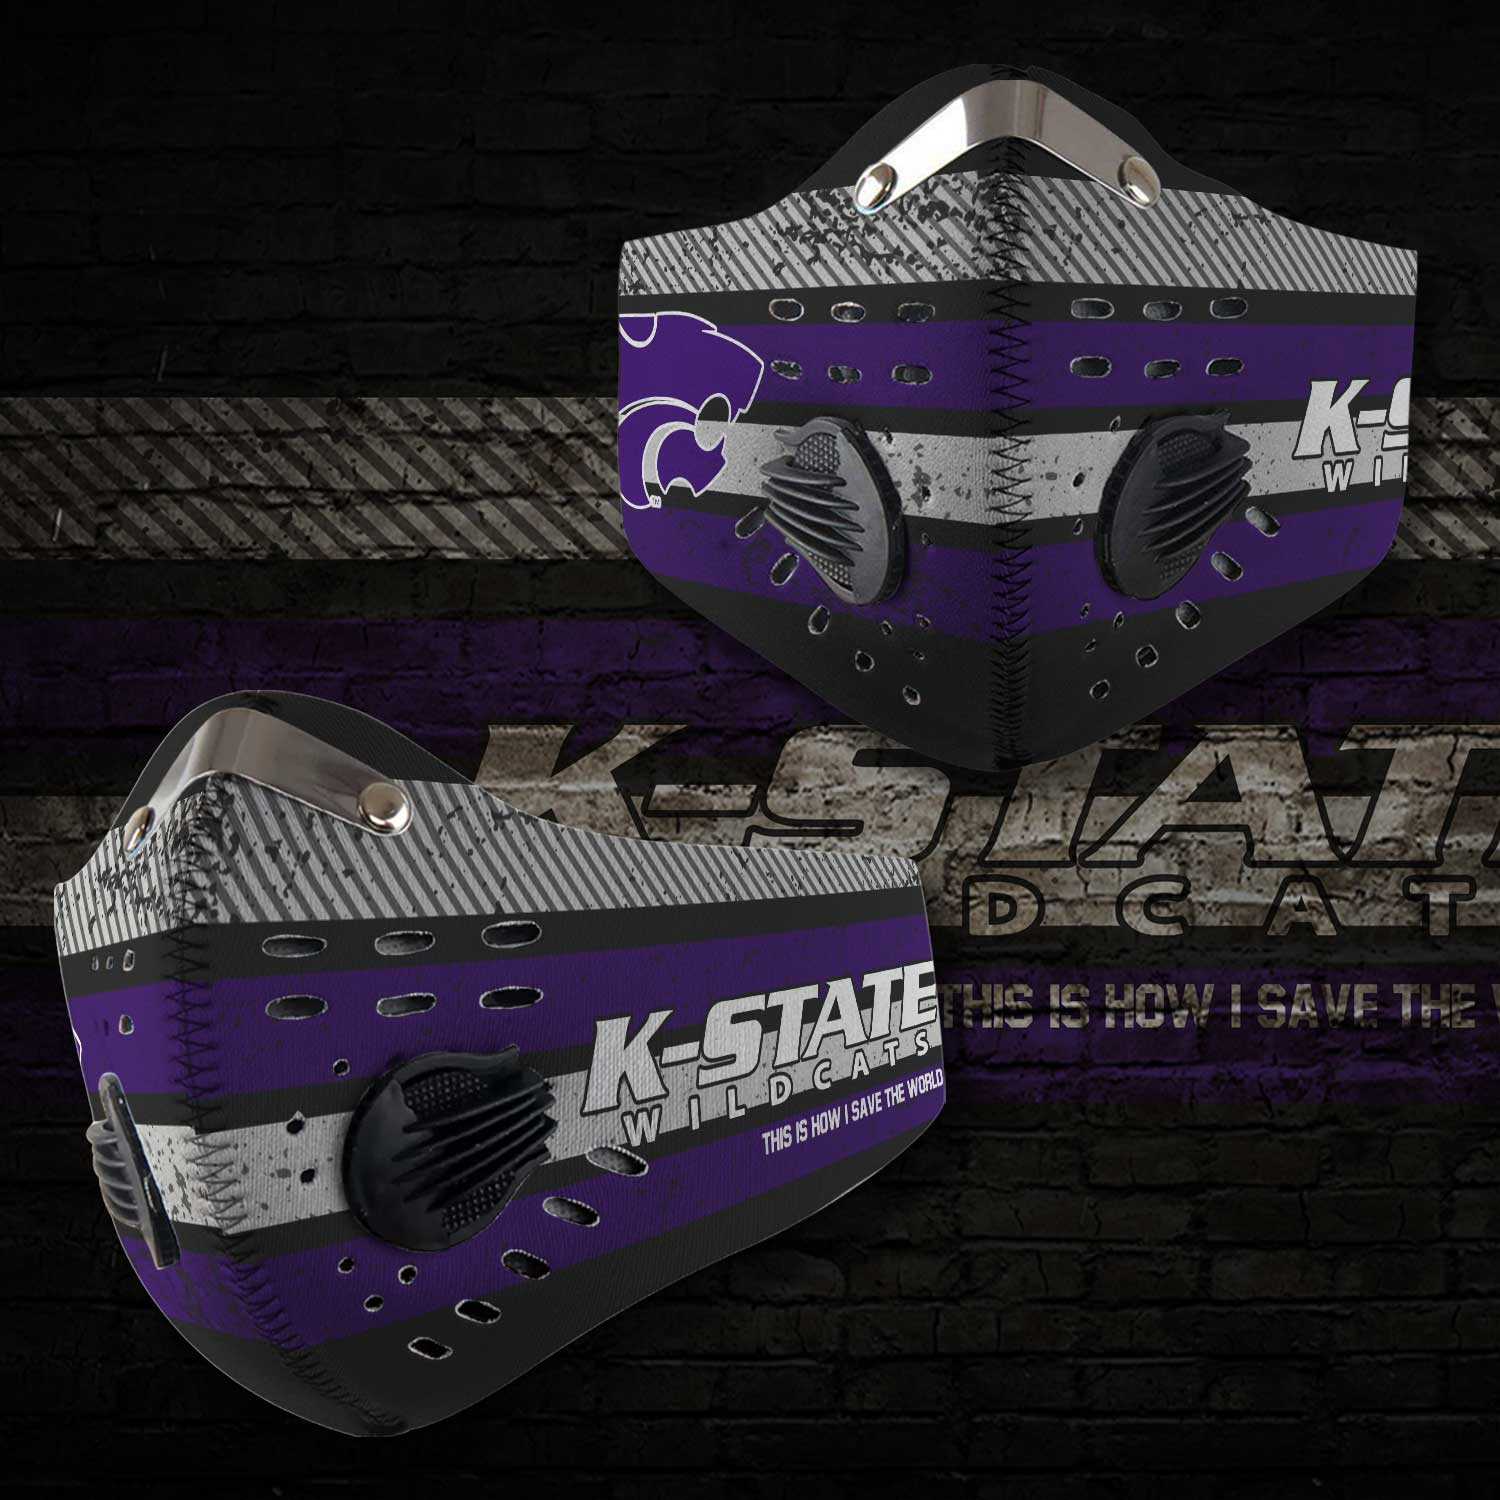 Kansas state wildcats football this is how i save the world face mask 2